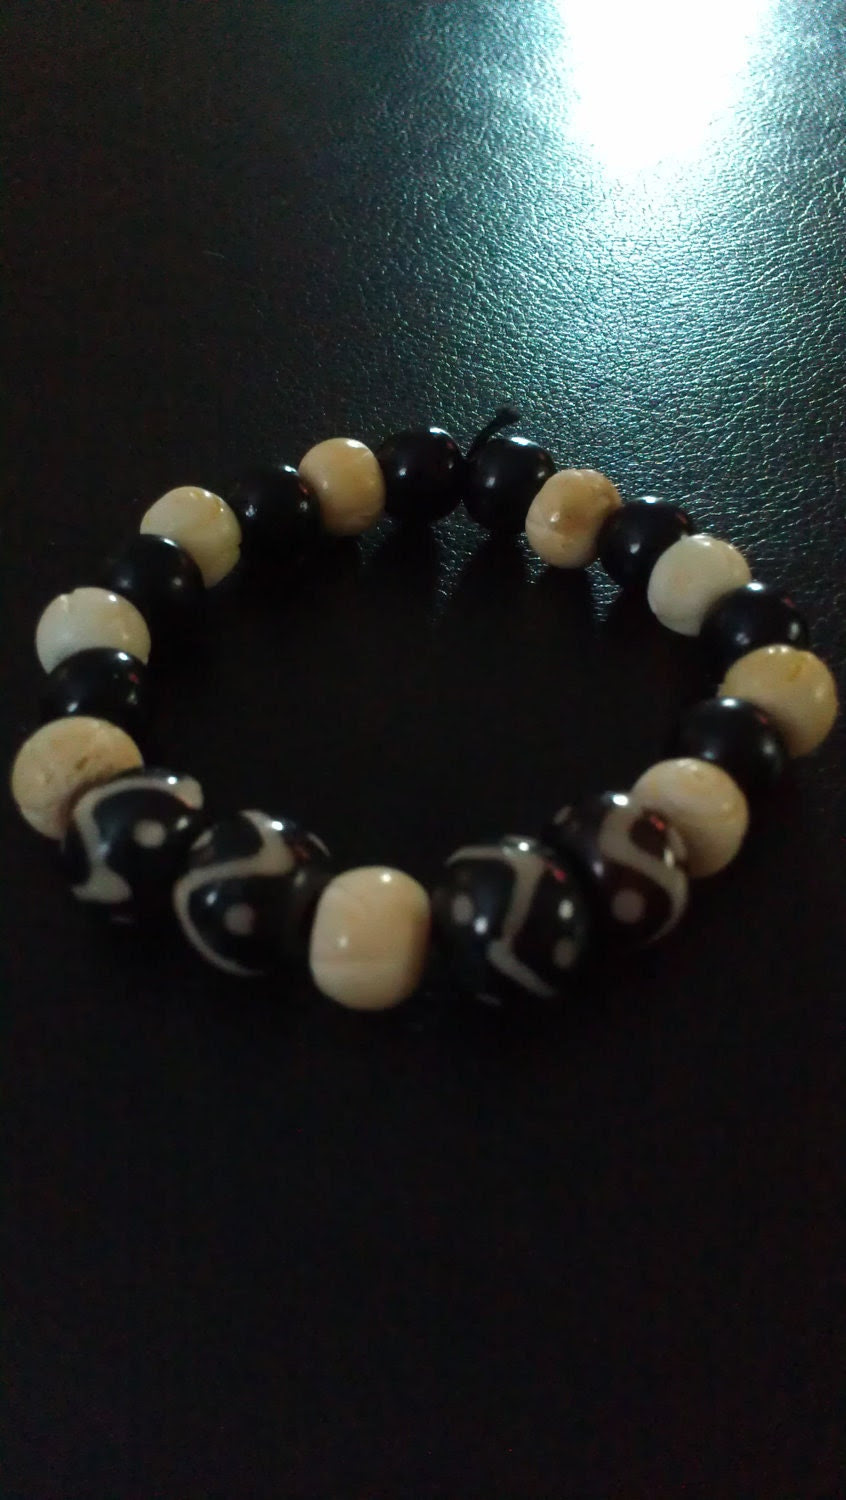 Unisex Tribal Black and Ivory Beaded Bracelet with Wooden, Bone, and Ceramic Beads and Stretch Elastic Cord